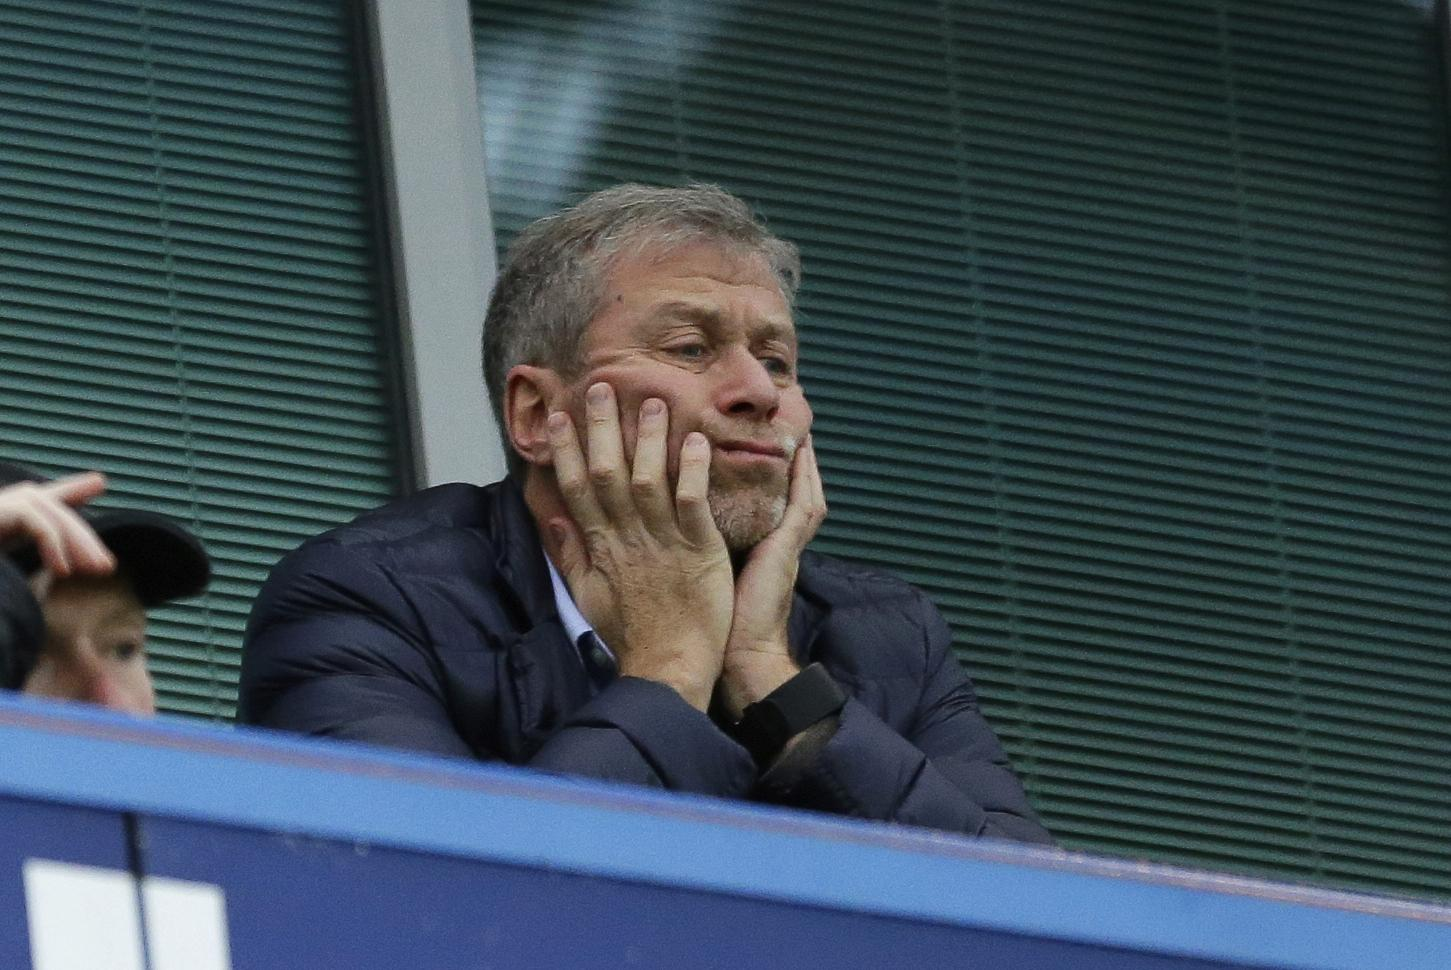 Chelsea owner Roman Abramovich is unlikely to be happy with the stadium news